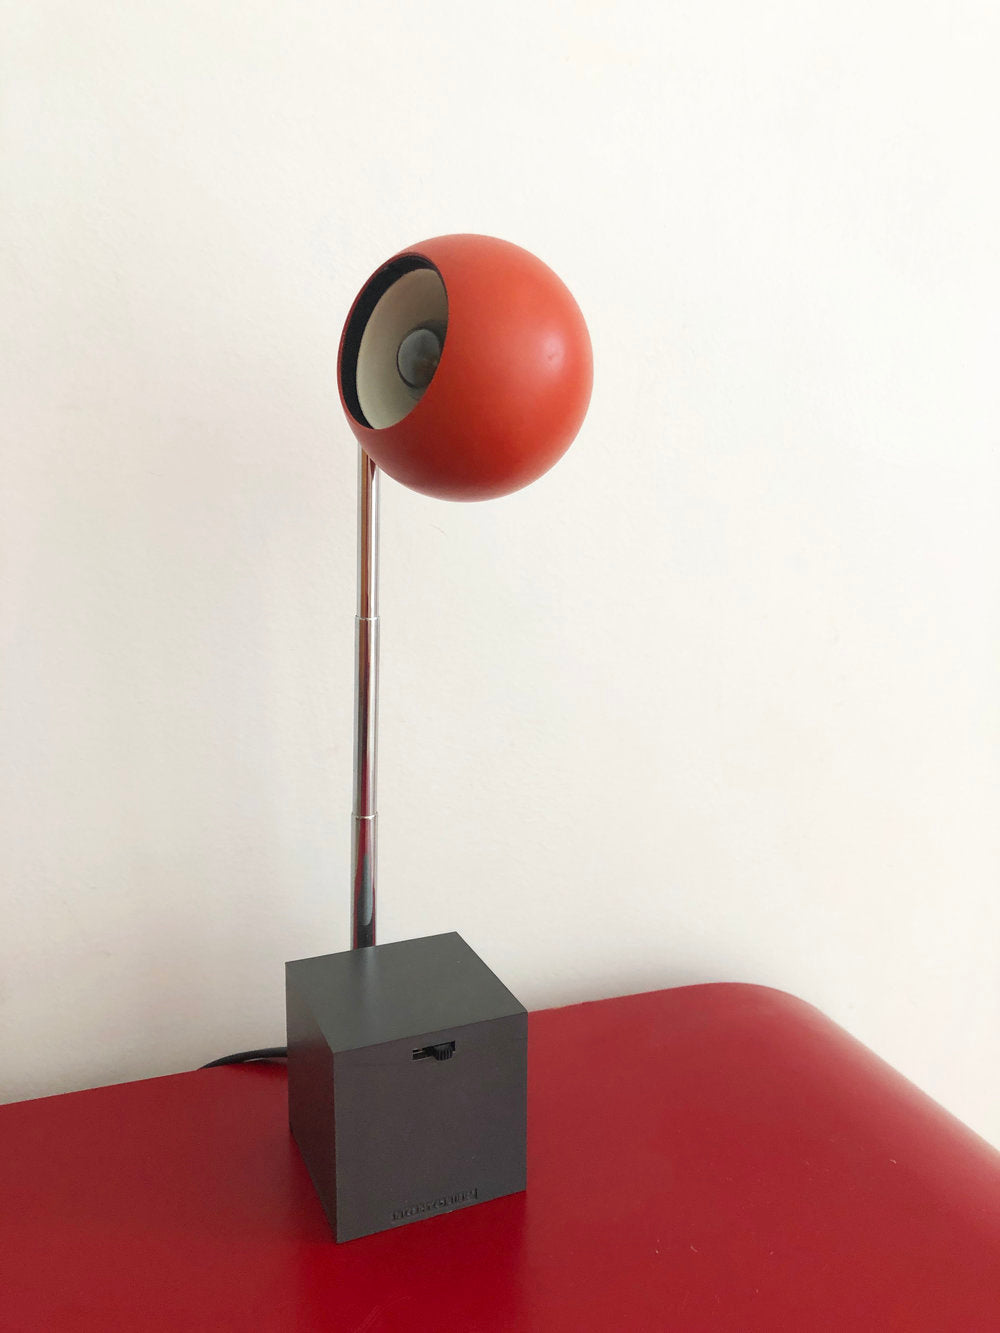 Mid Century Red Orb Lamp with Square Base by Micheal Lax